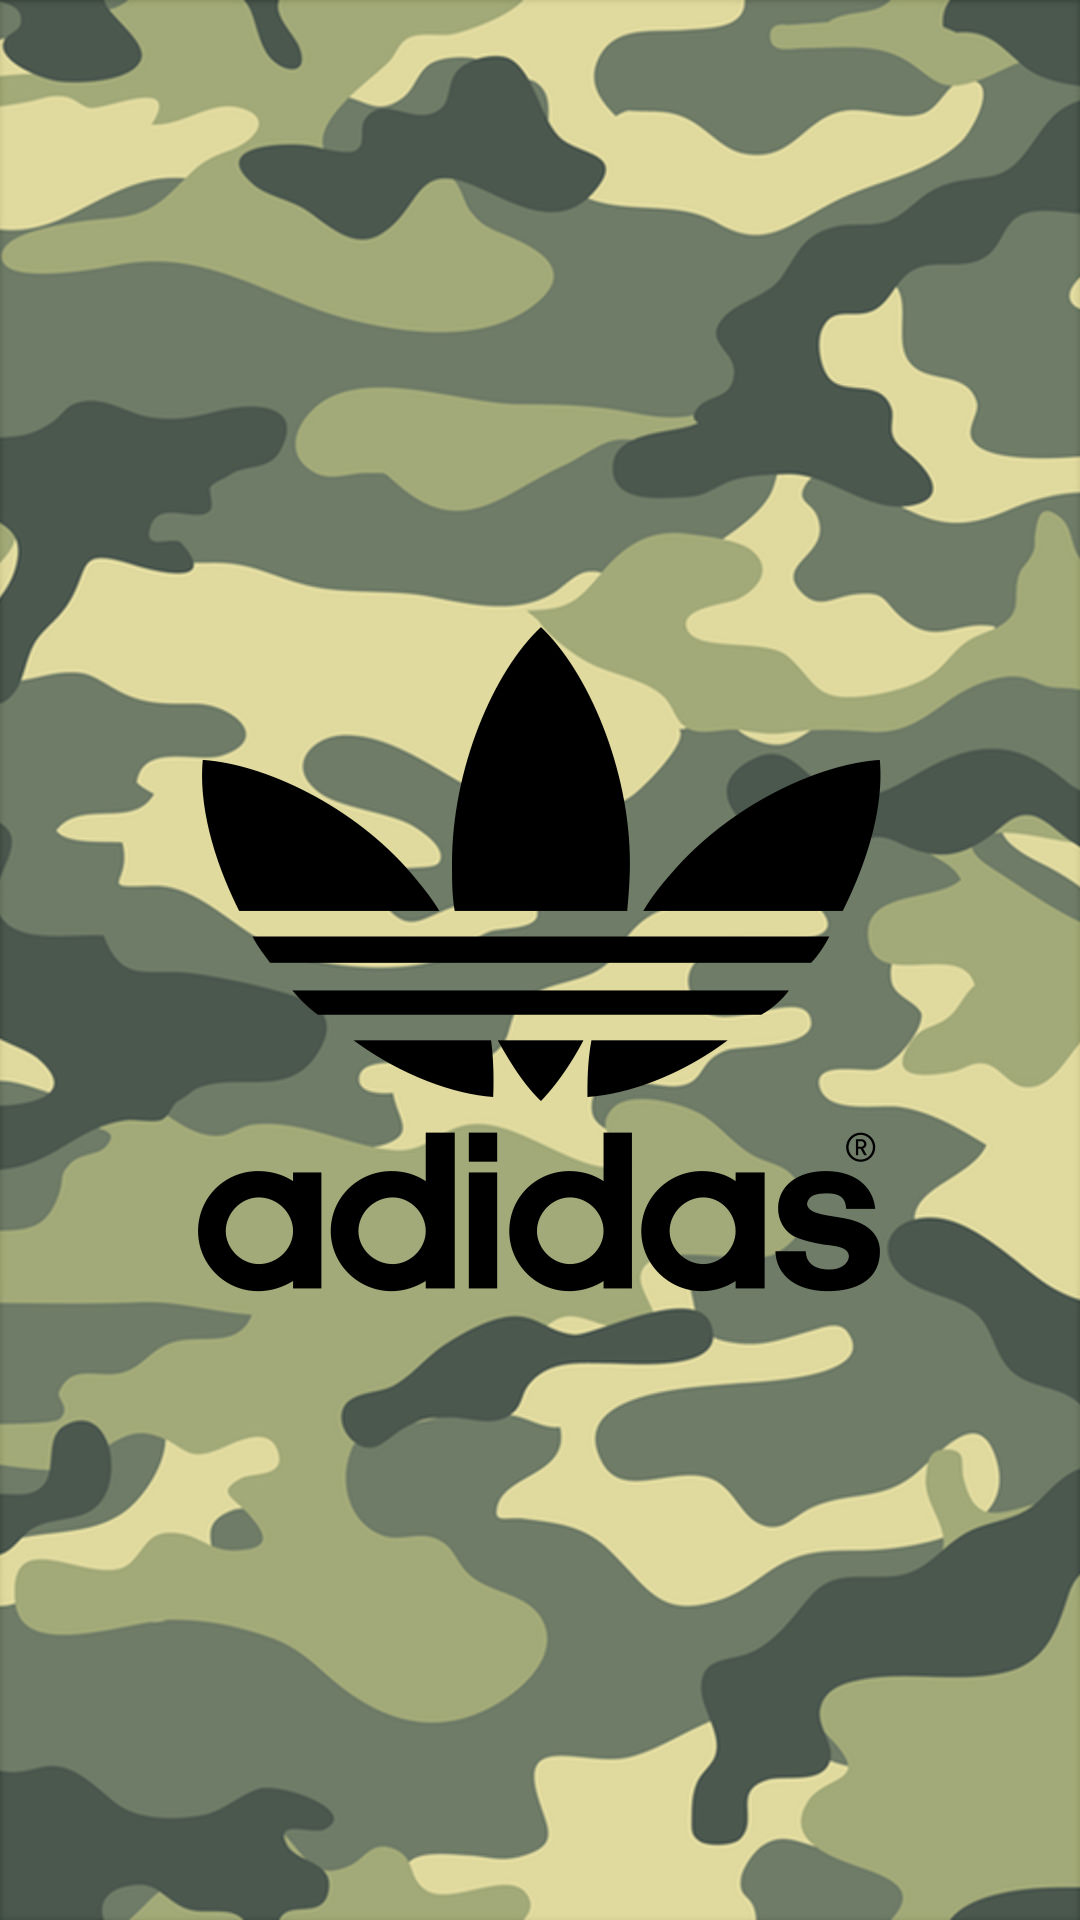 adidas16 - 25 adidas HQ Smartphone Wallpaper Collection